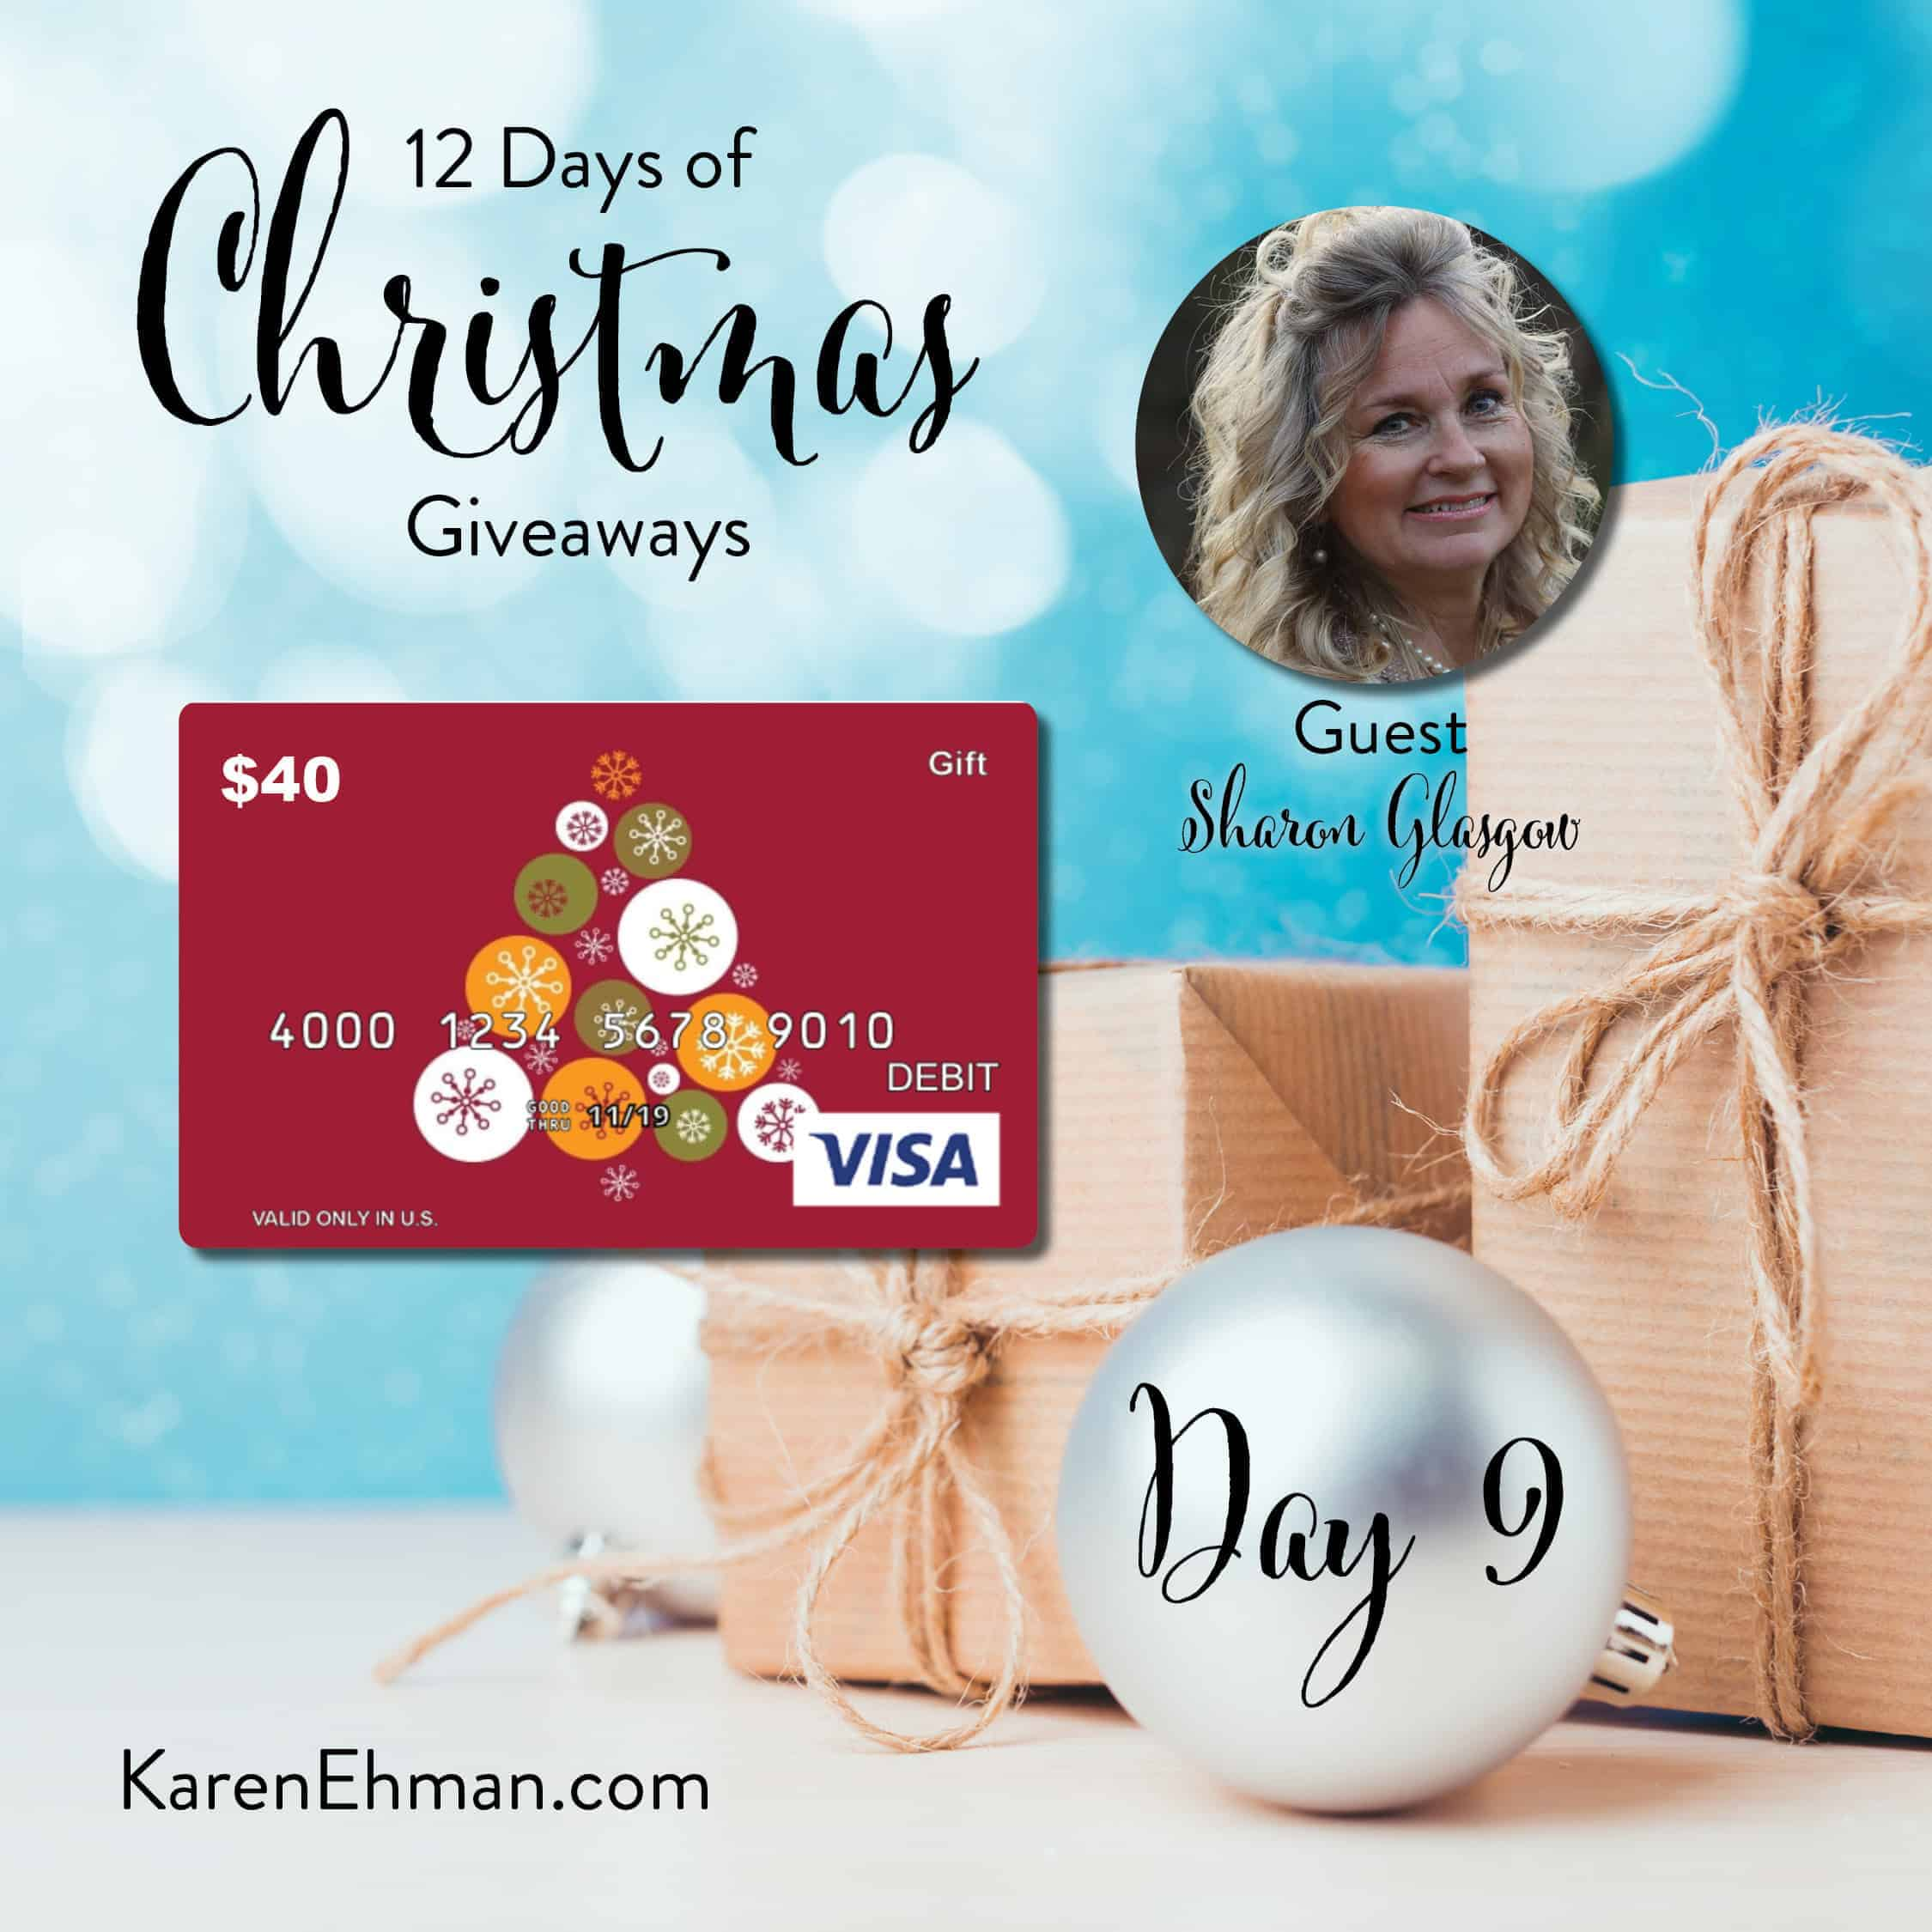 Day 9 of 12 Days of Christmas Giveaways (with Sharon Glasgow)